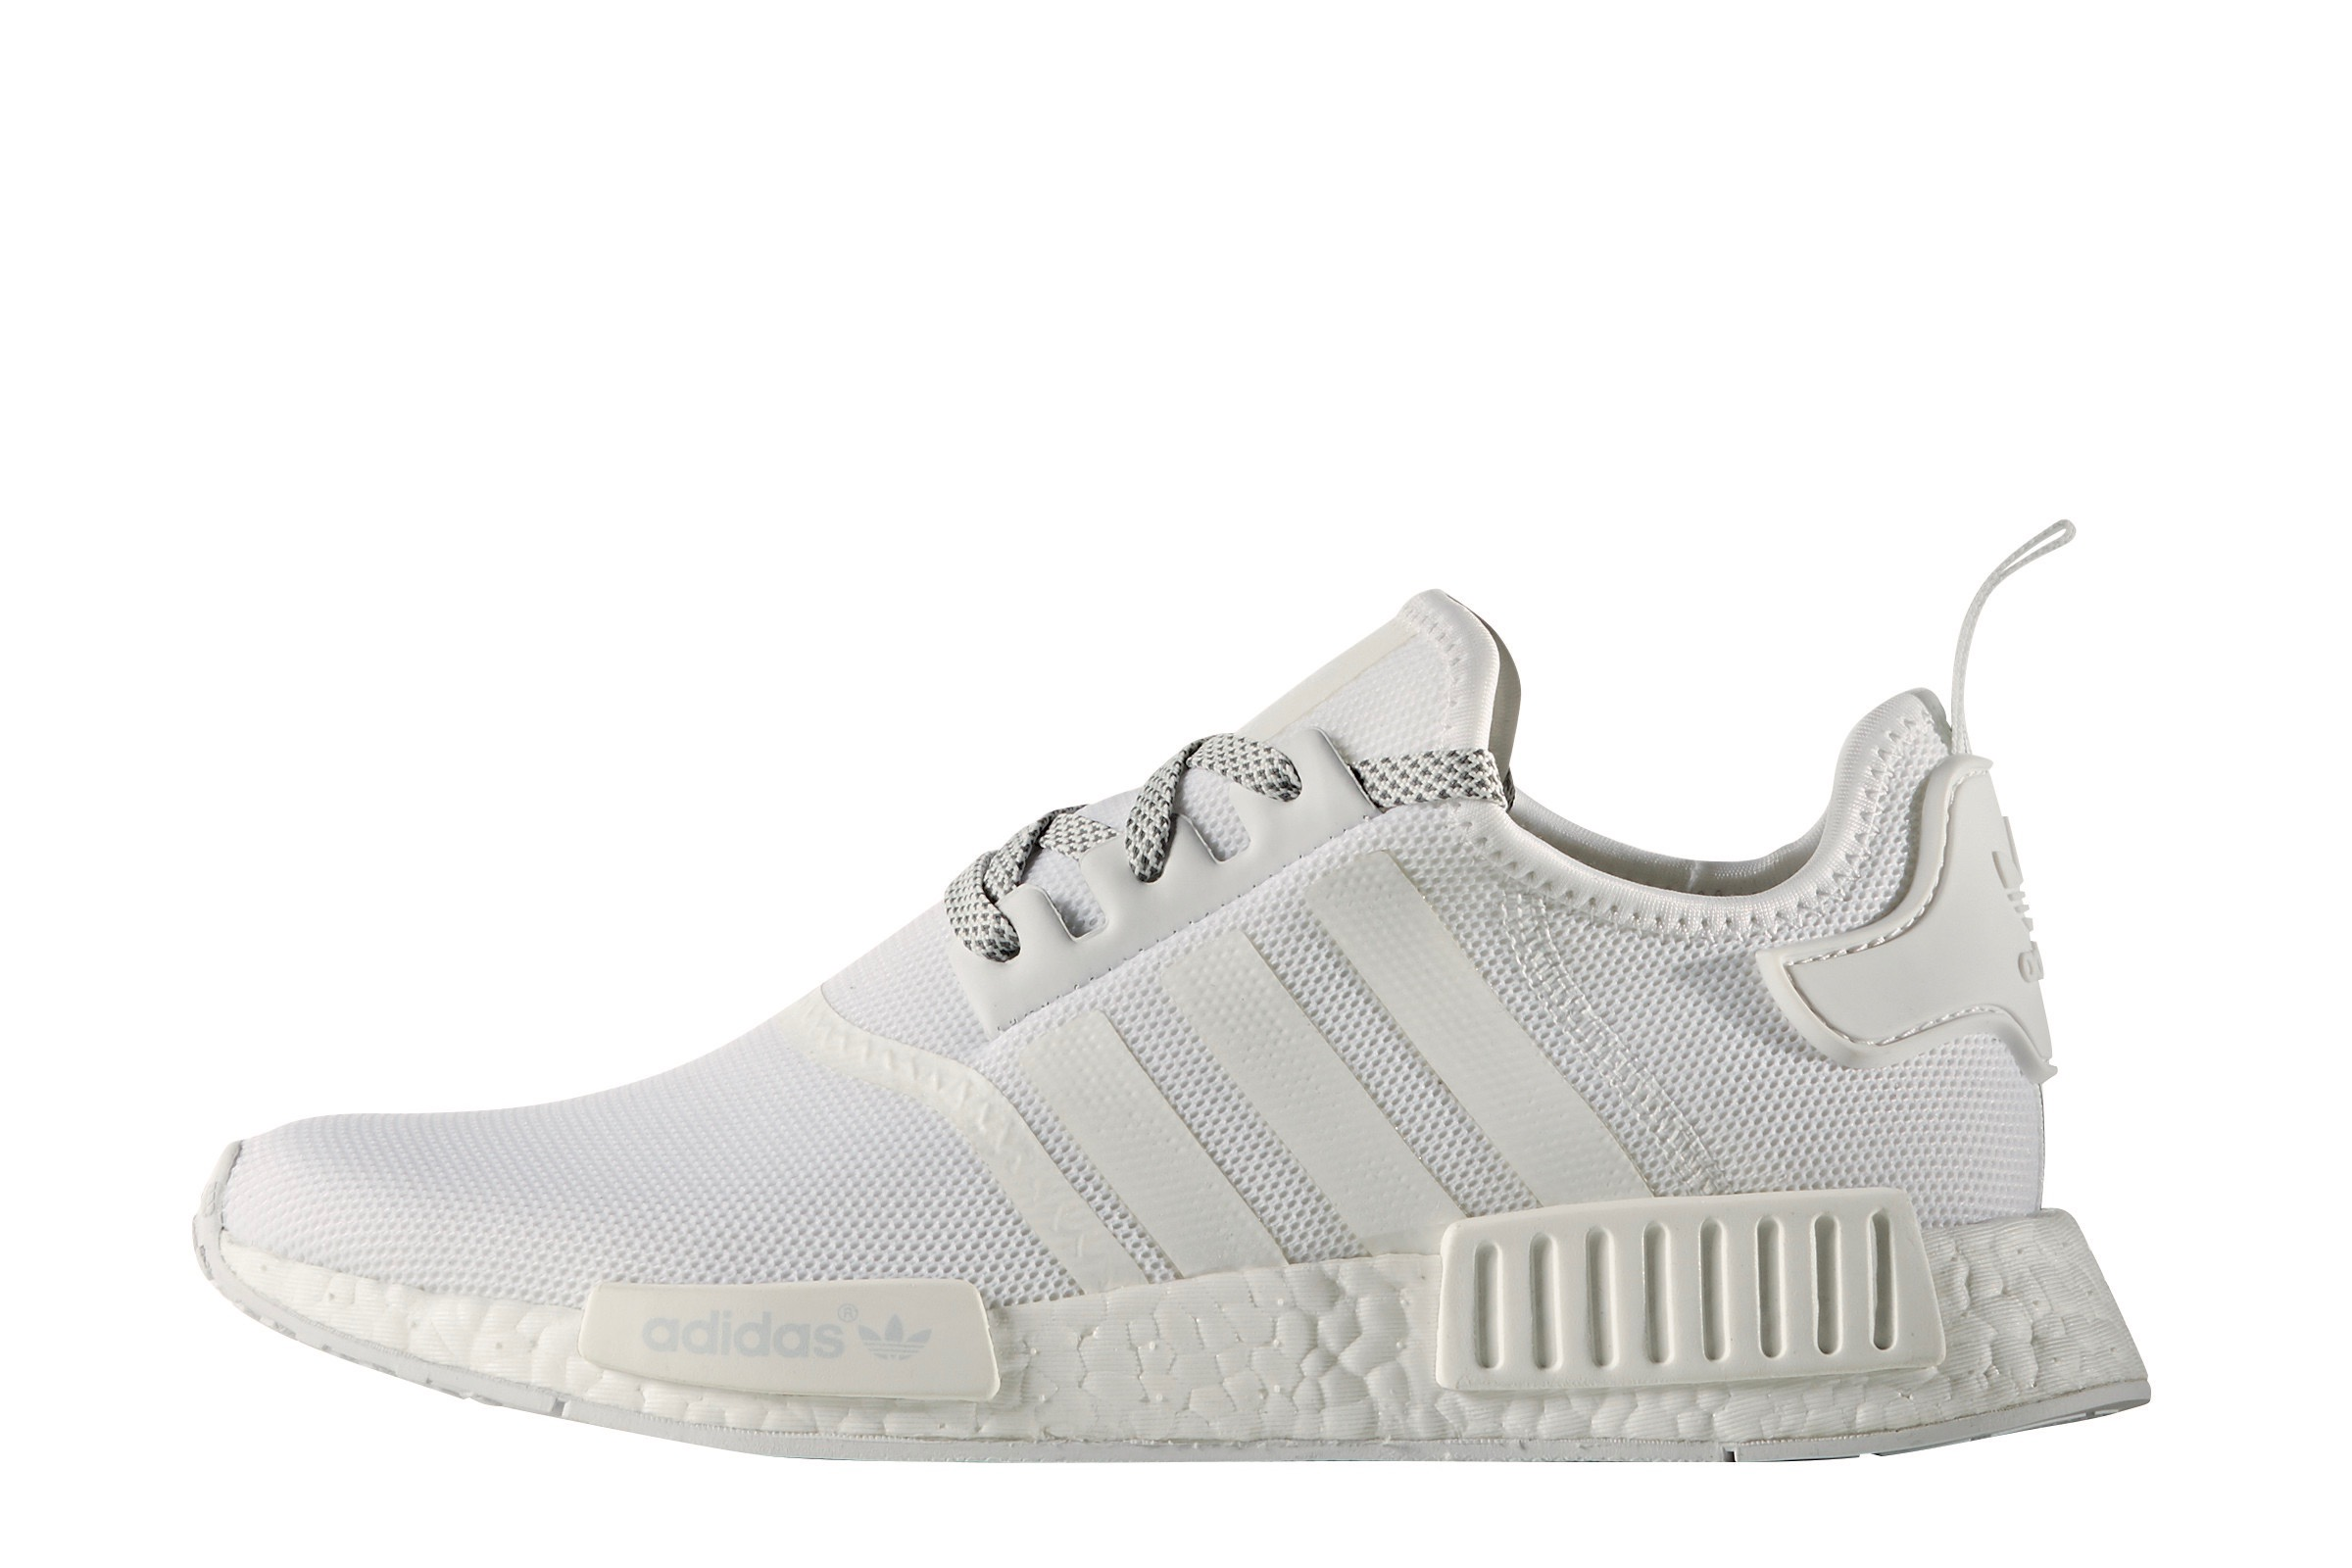 Adidas NMD_R1 White Reflective FTWR WhiteFTWR WhiteFTWR White S31506 Outlet DSReM